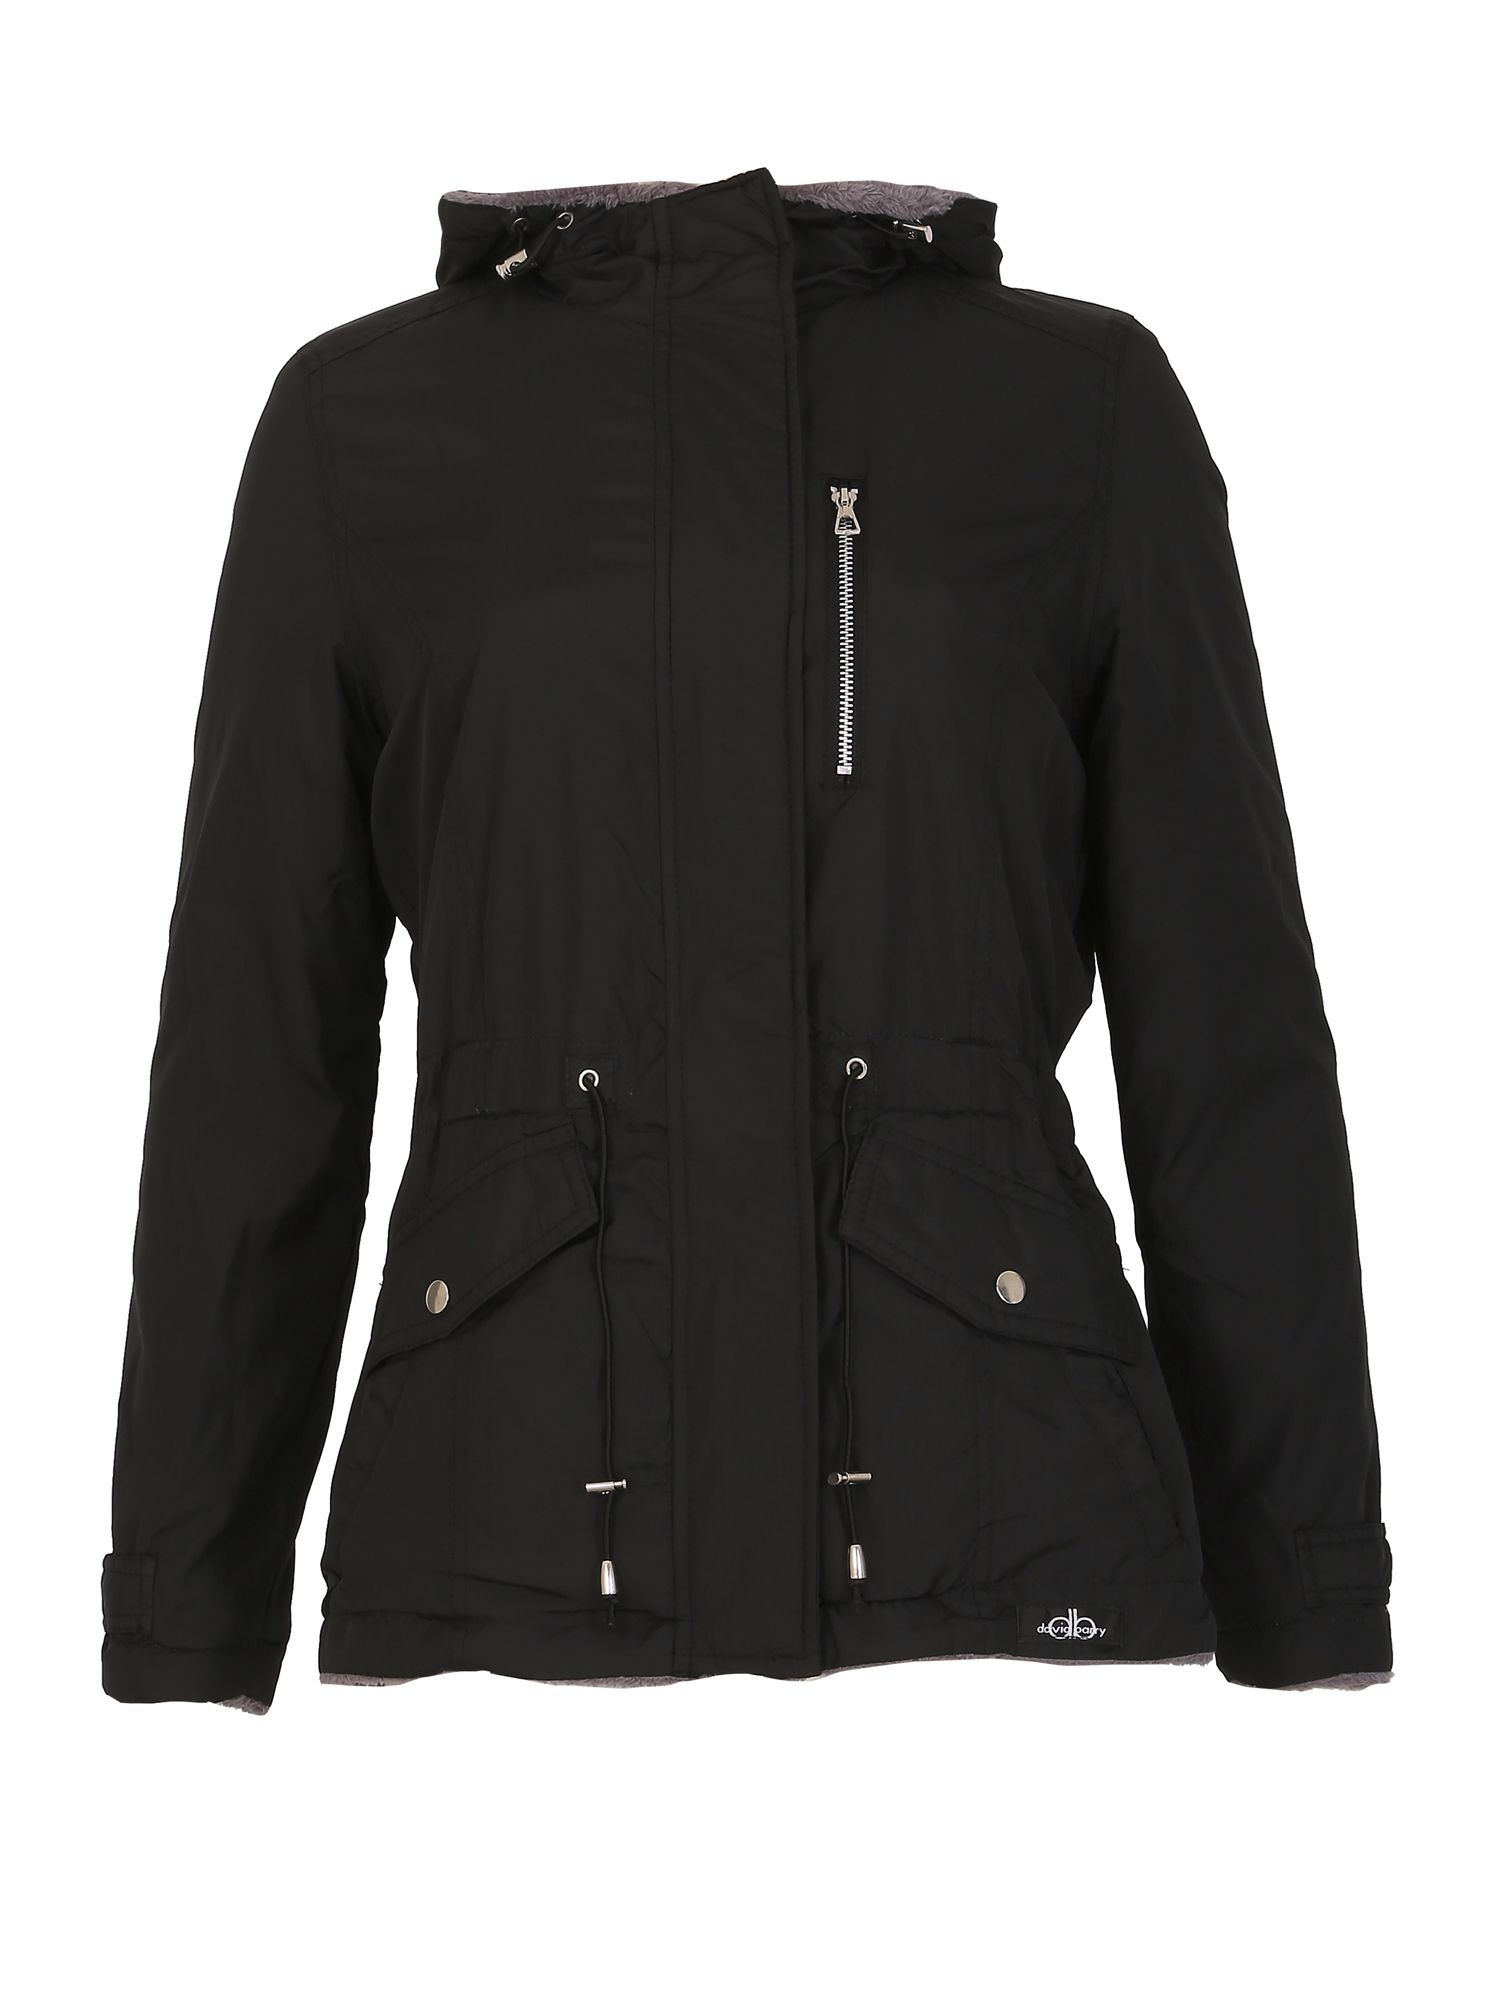 David Barry Reversible Multi Pocket Jacket, Black